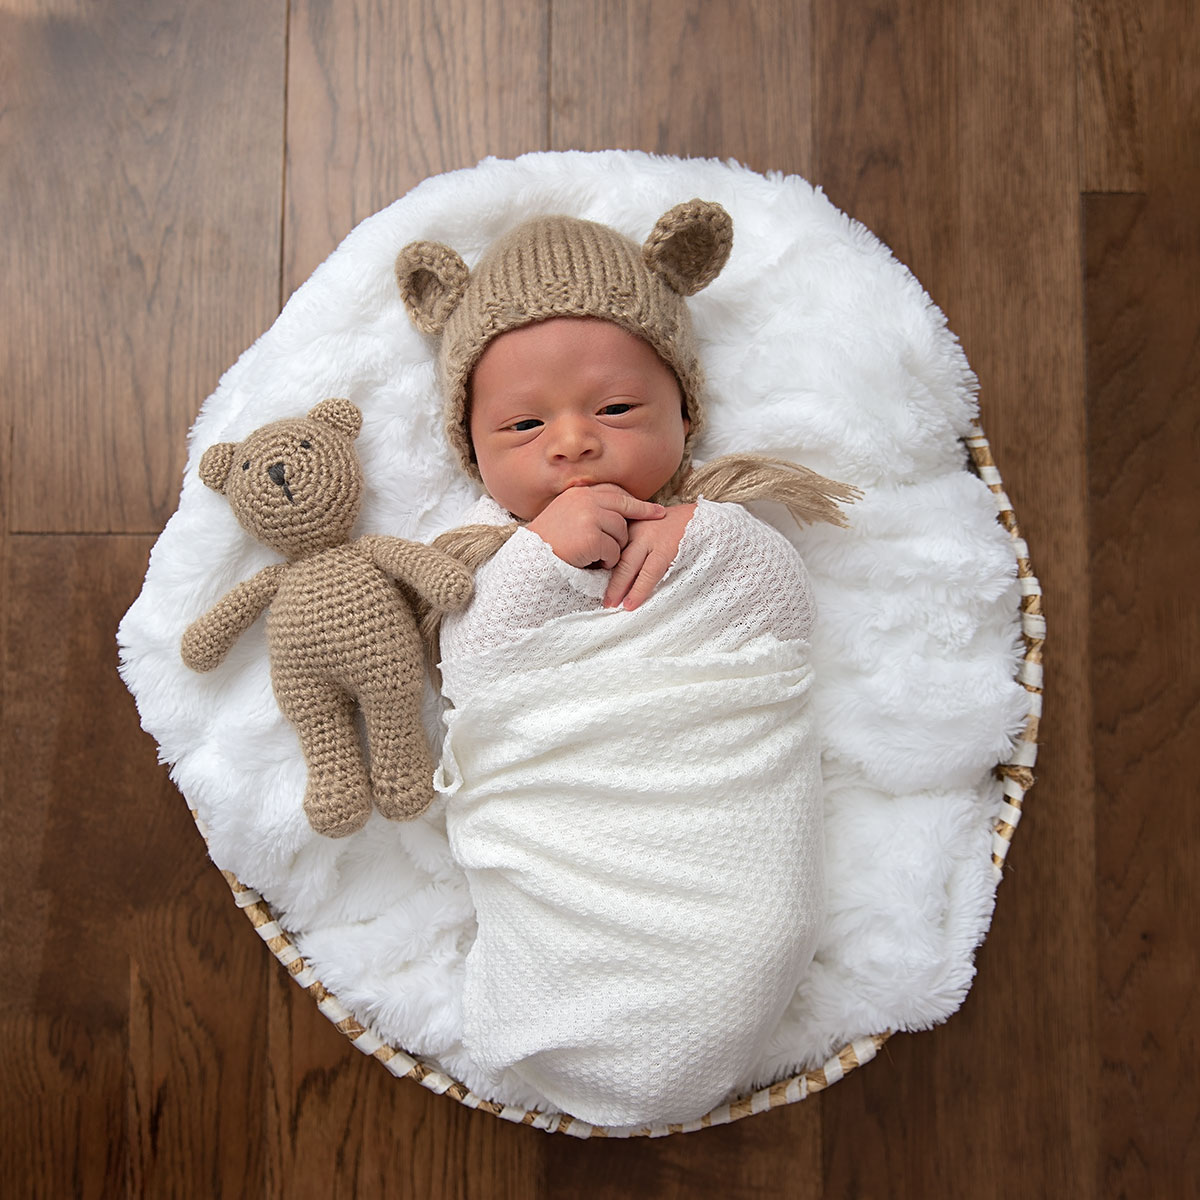 Photo of a newborn baby in a basket